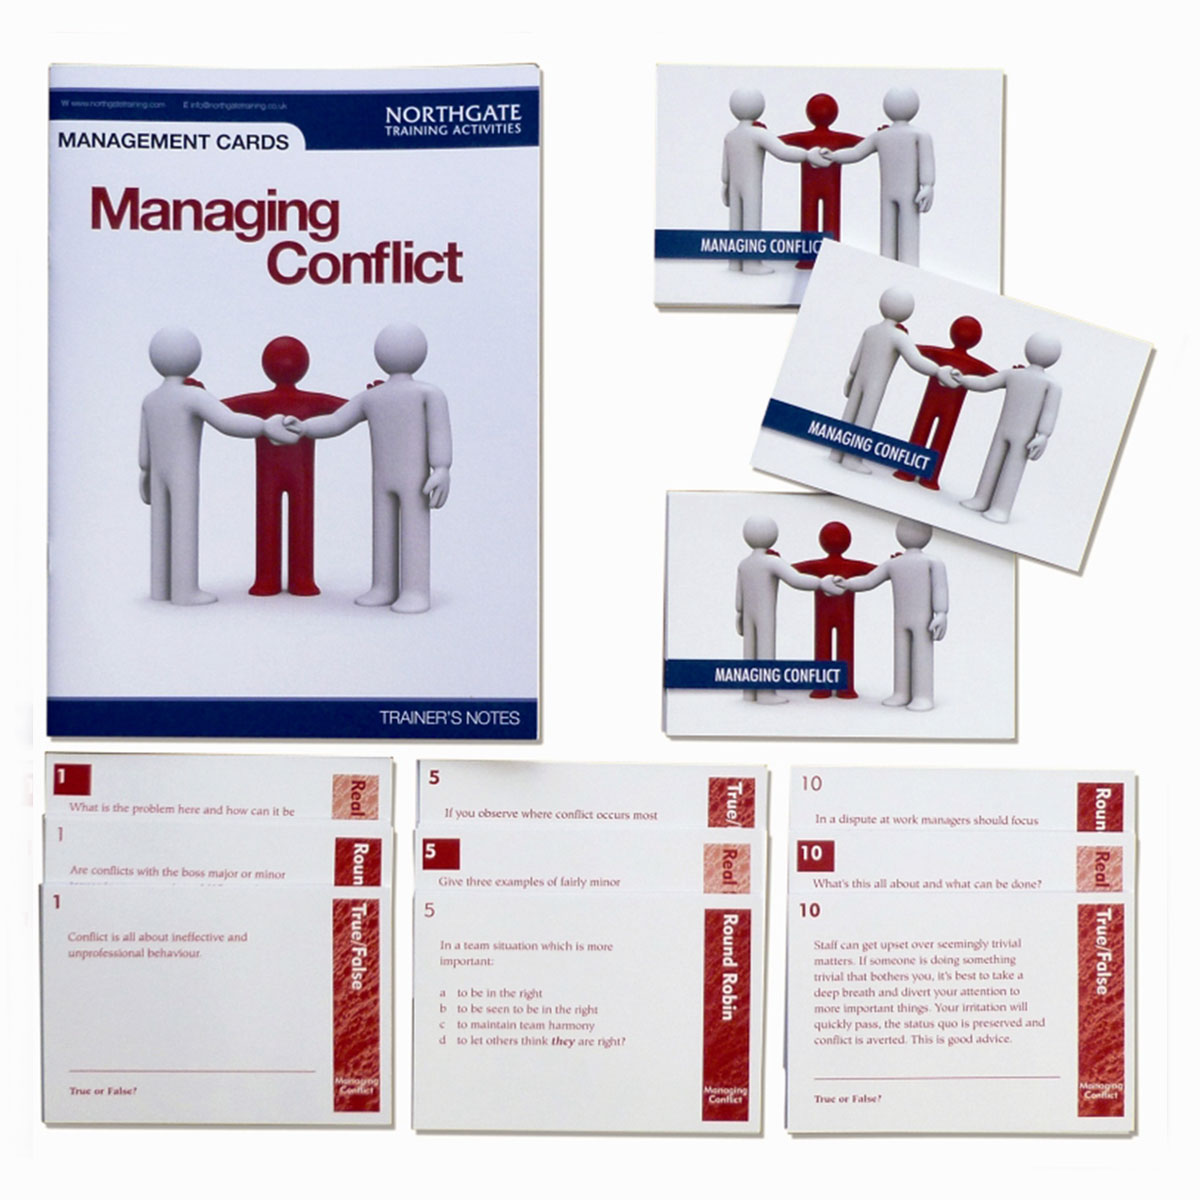 Managing Conflict Cards | Conflict Management Training Activity